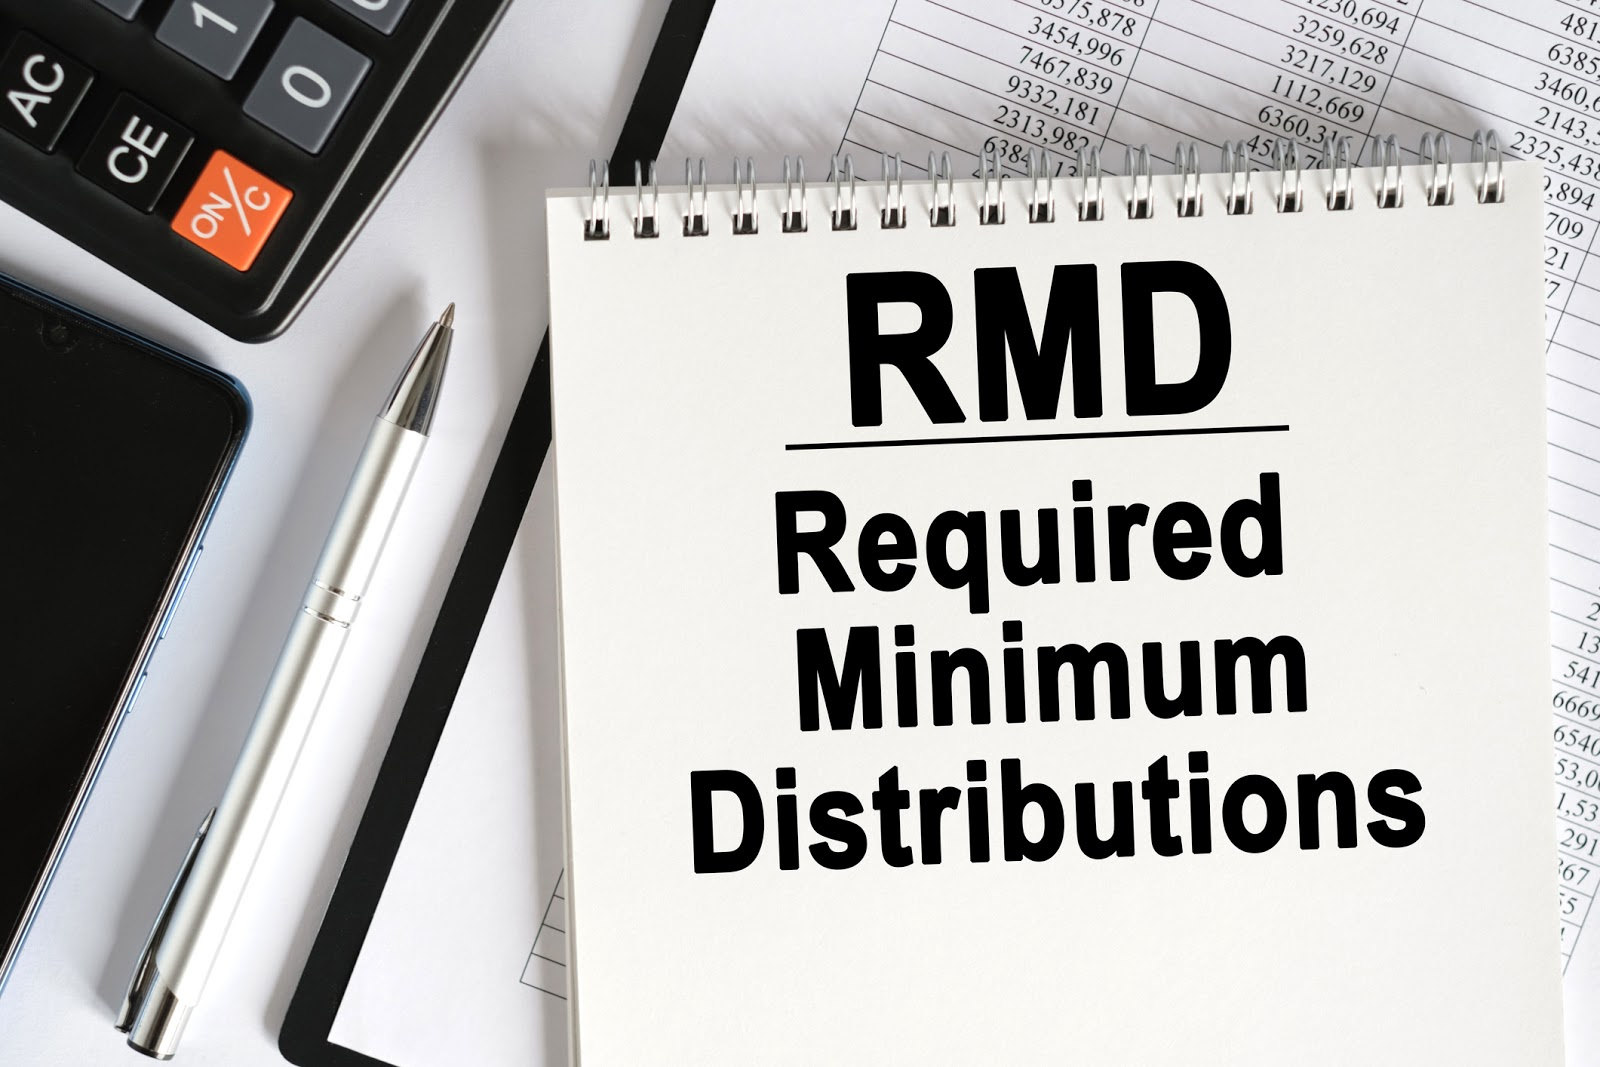 RMD's in 2020 Fast Facts